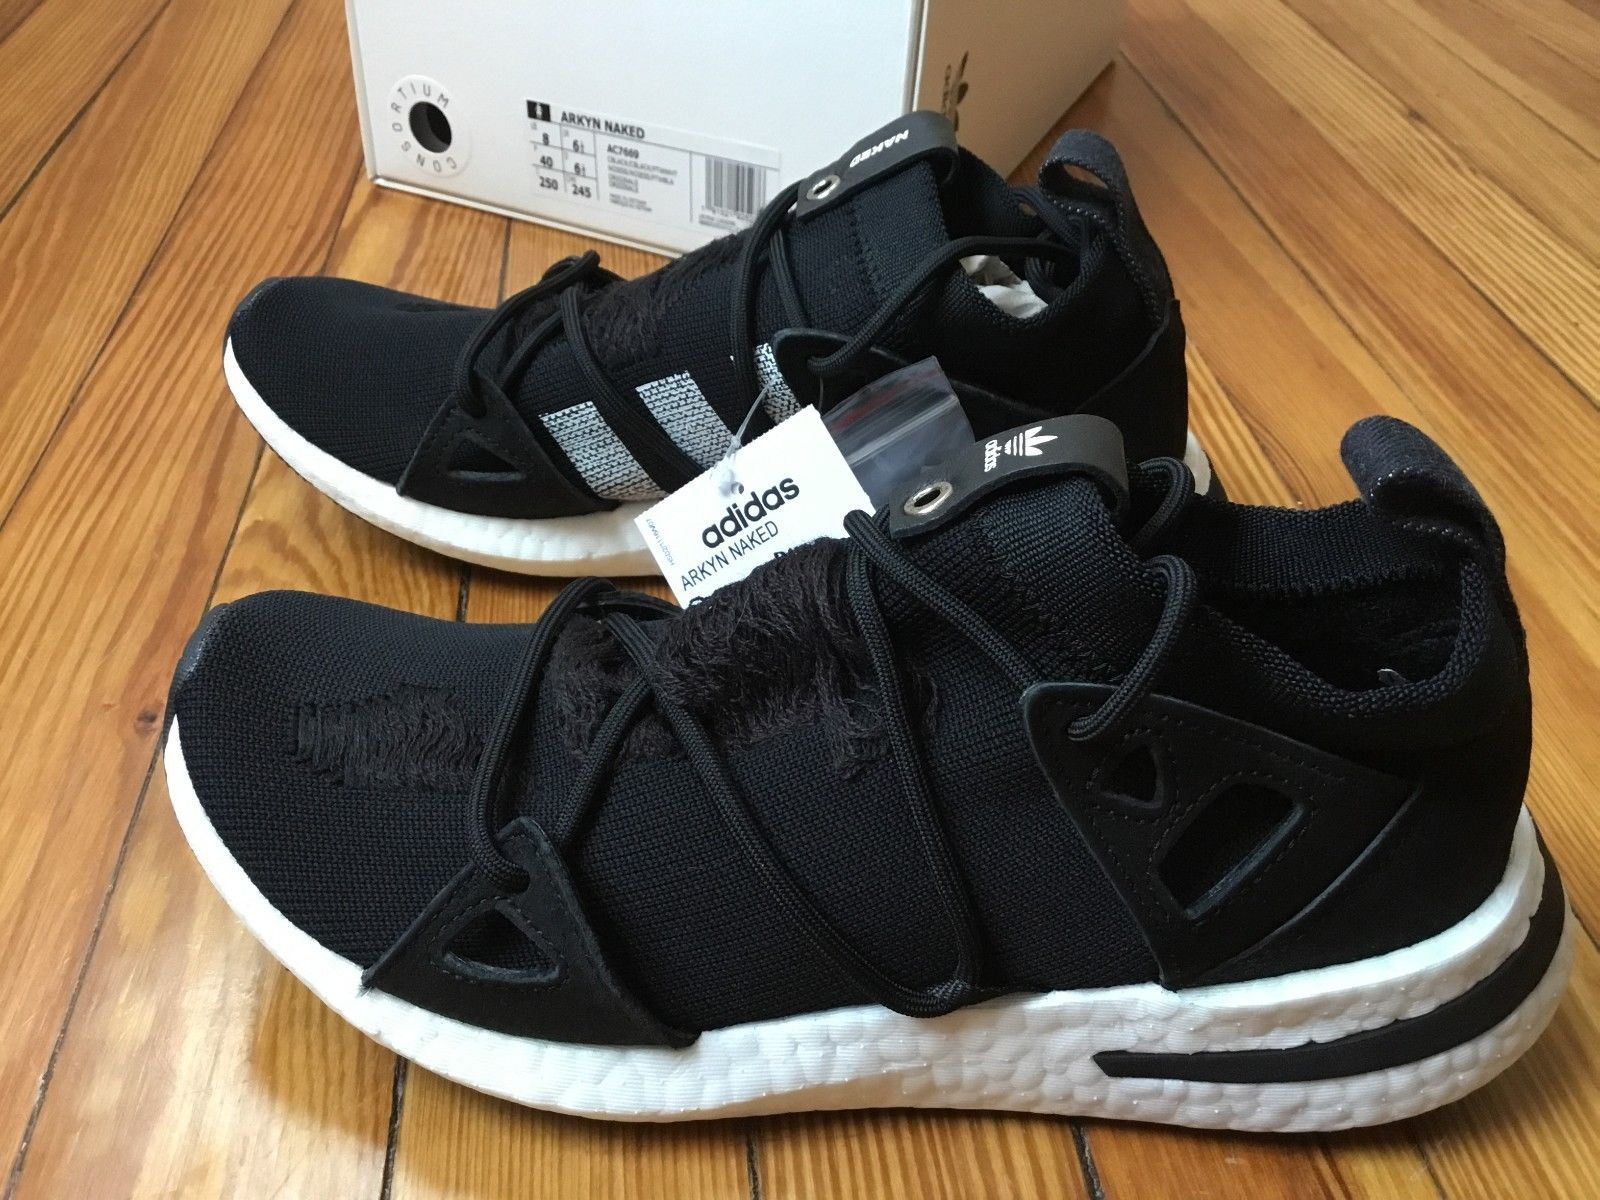 acfc83174c8d95 Adidas Arkyn Naked women s shoes sneakers AC7669 black multiple sizes